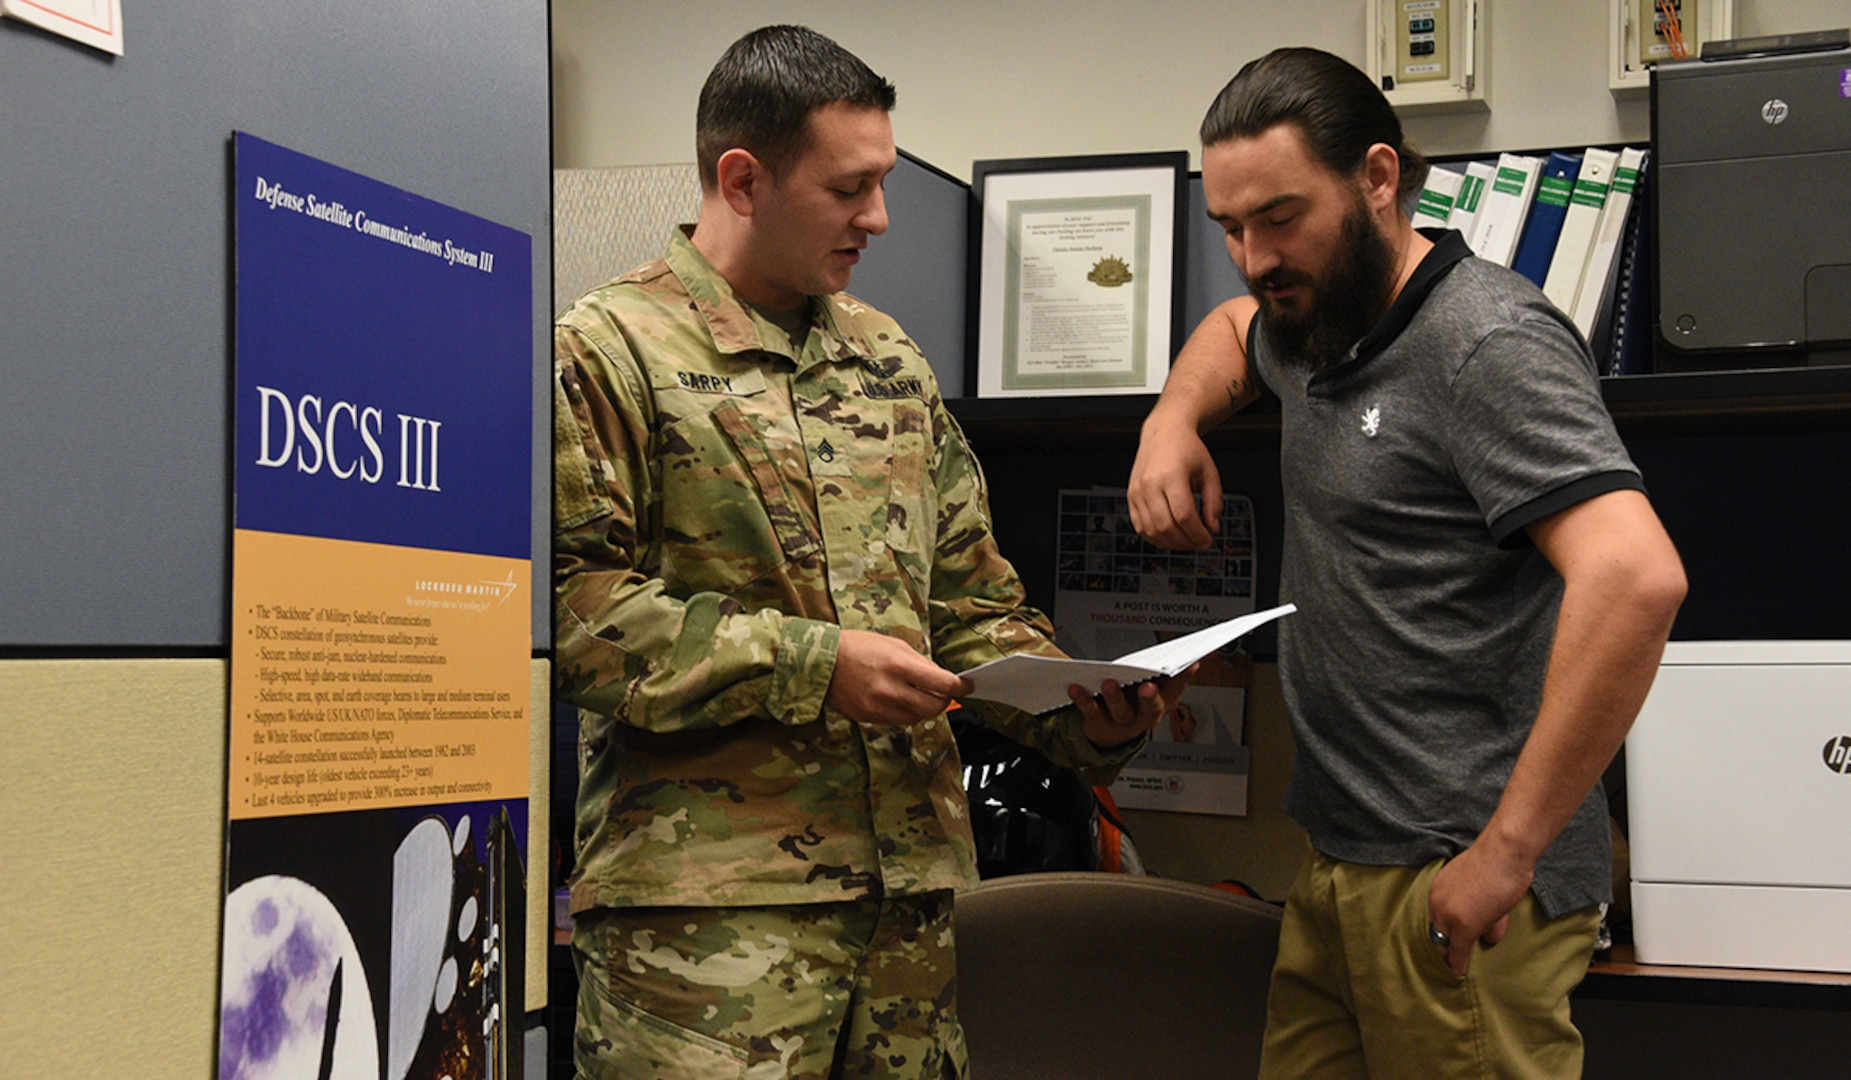 The Regional Satellite Communications Support Center-Pacific in Hawaii comprises Space Soldiers and civilians who provide 24/7/365 satellite communications planning, engineering and satellite payload management for all Department of Defense satellite communications systems. Last week, the RSSC-PAC responded to an urgent request from the U.S. Navy hospital ship USNS Mercy and U.S. Indo-Pacific Command for additional bandwidth to enable telemedicine and other online capabilities aboard the ship. (U.S. Army photo by Carrie David Campbell)